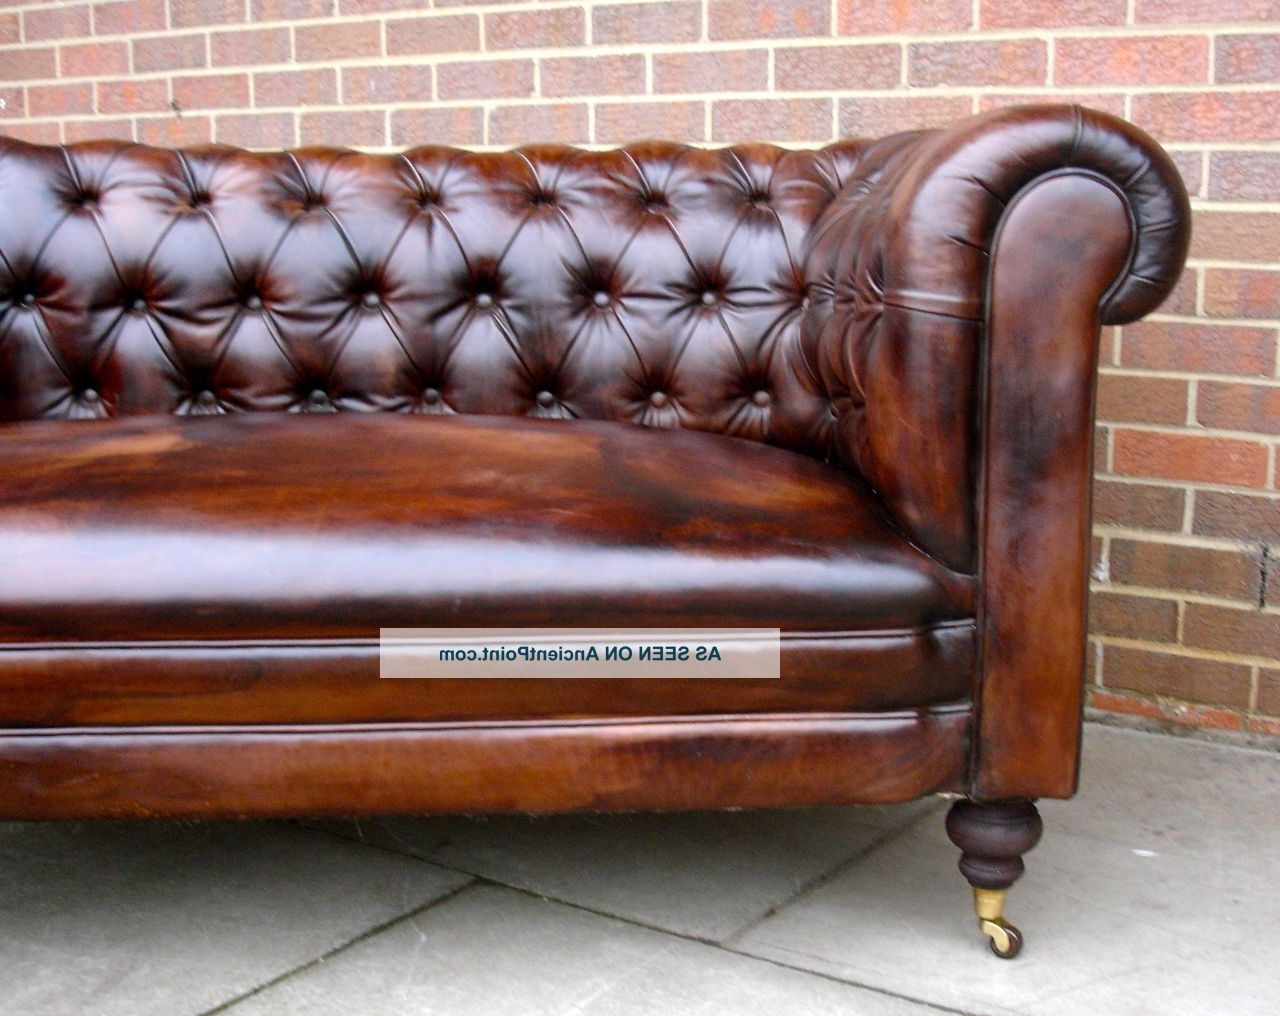 Most Current Leather Chesterfield Sofas In Used Leather Chesterfield Sofa – Home And Textiles (View 14 of 20)